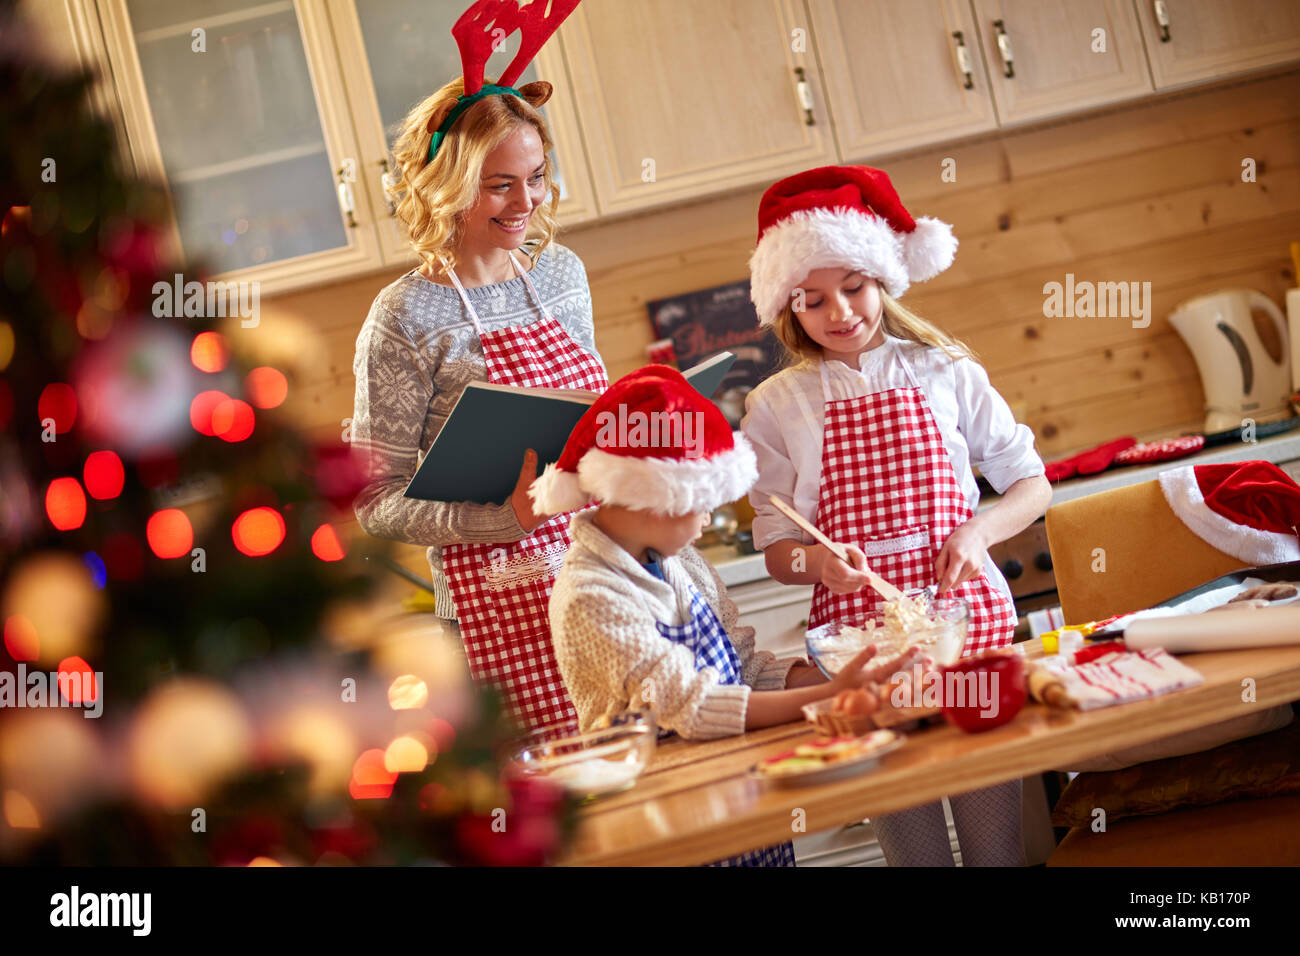 mother helping children at making christmas cookies family time stock image - Making Christmas Cookies